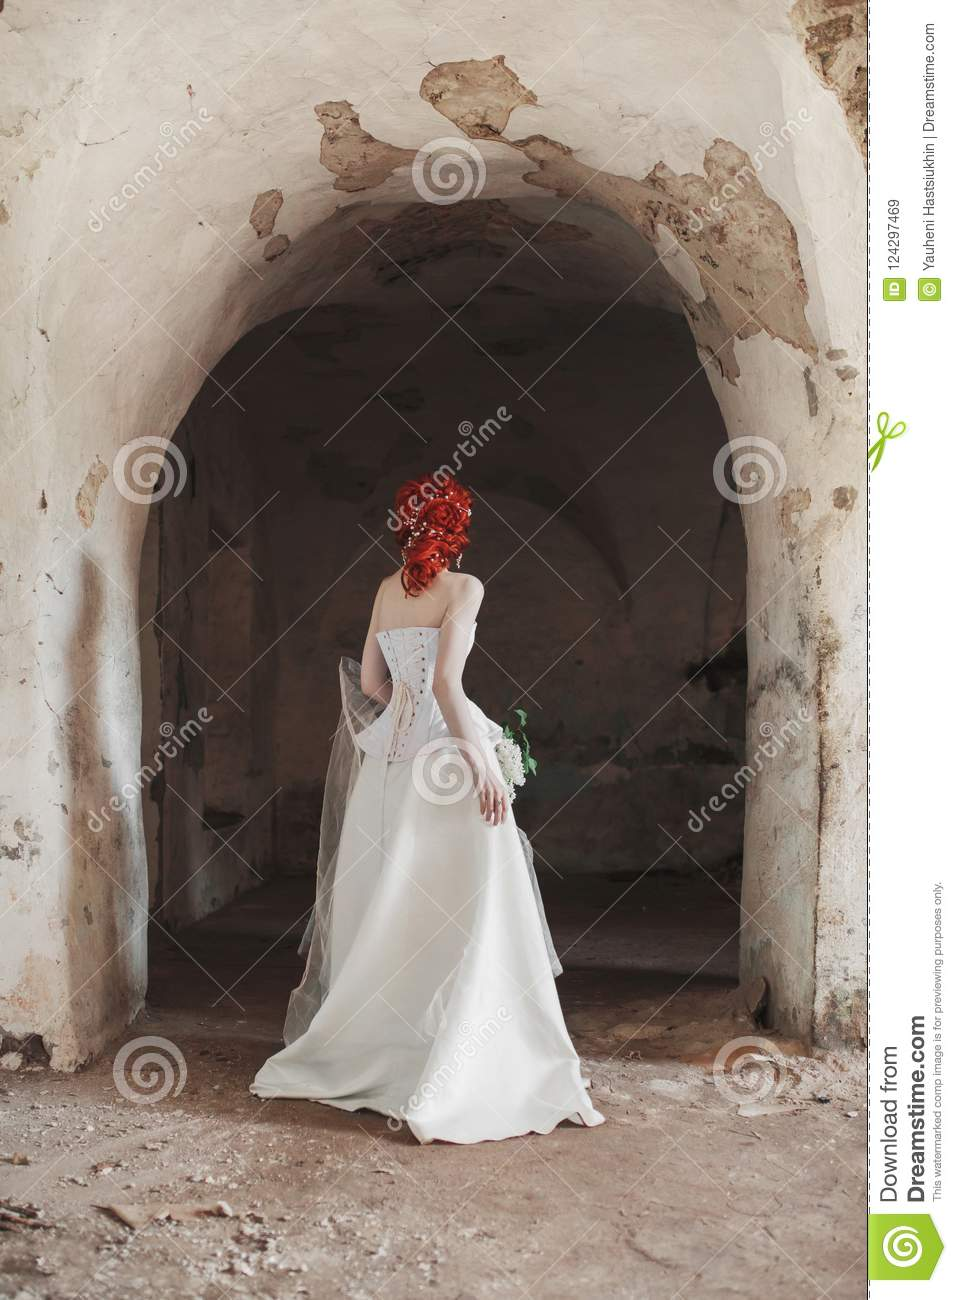 Renaissance redhead mysterious princess with hairstyle in old castle. Doll in corset. Victorian princess in palace.